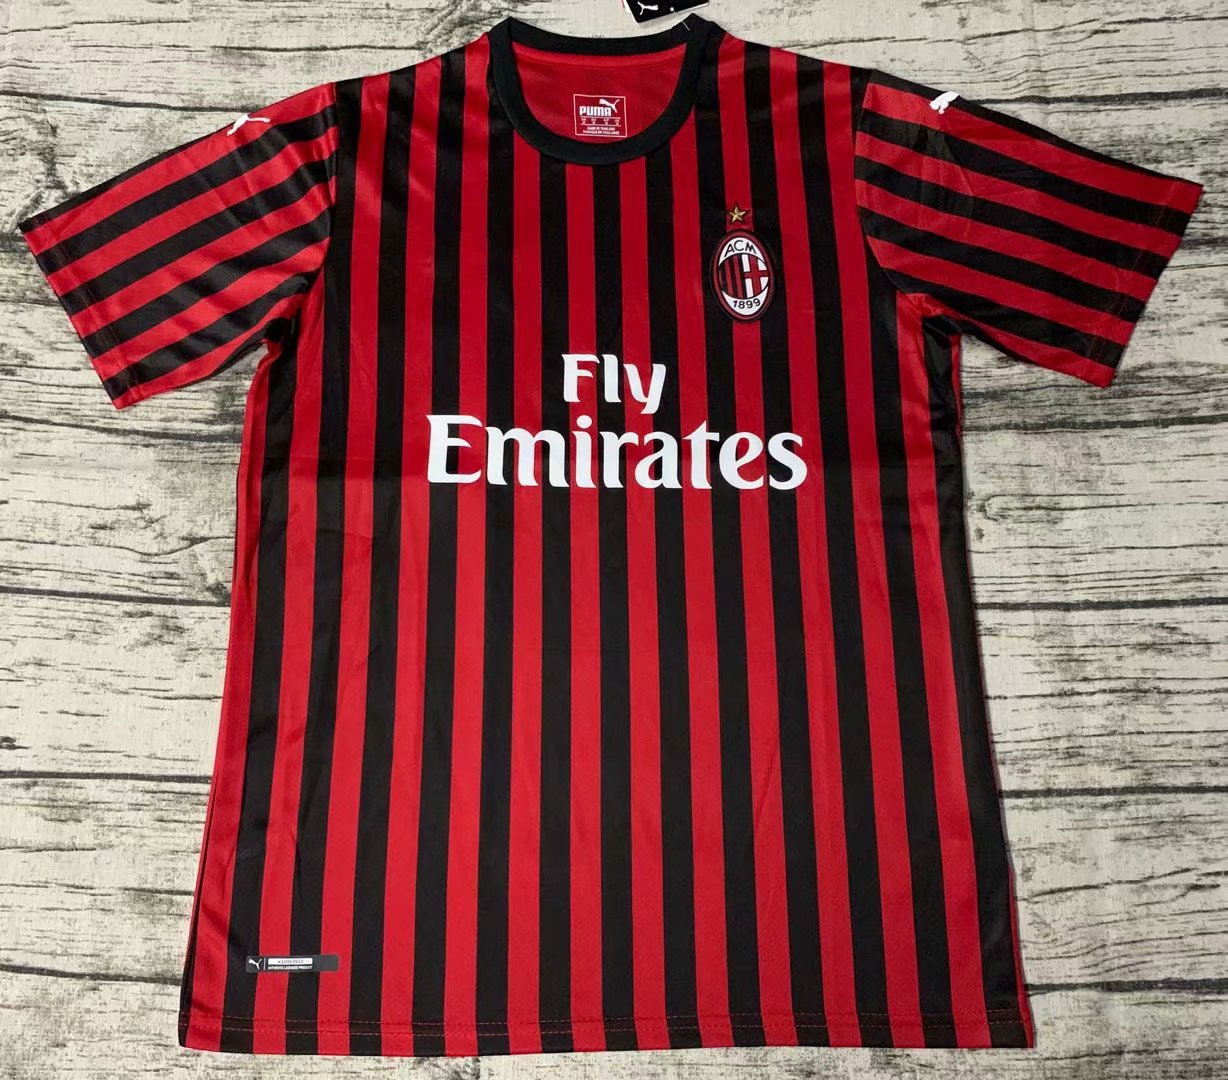 2019/2020 season AC Milan home soccer jerseys new Thai version of the shirt jersey men's soccer clothing custom name and number